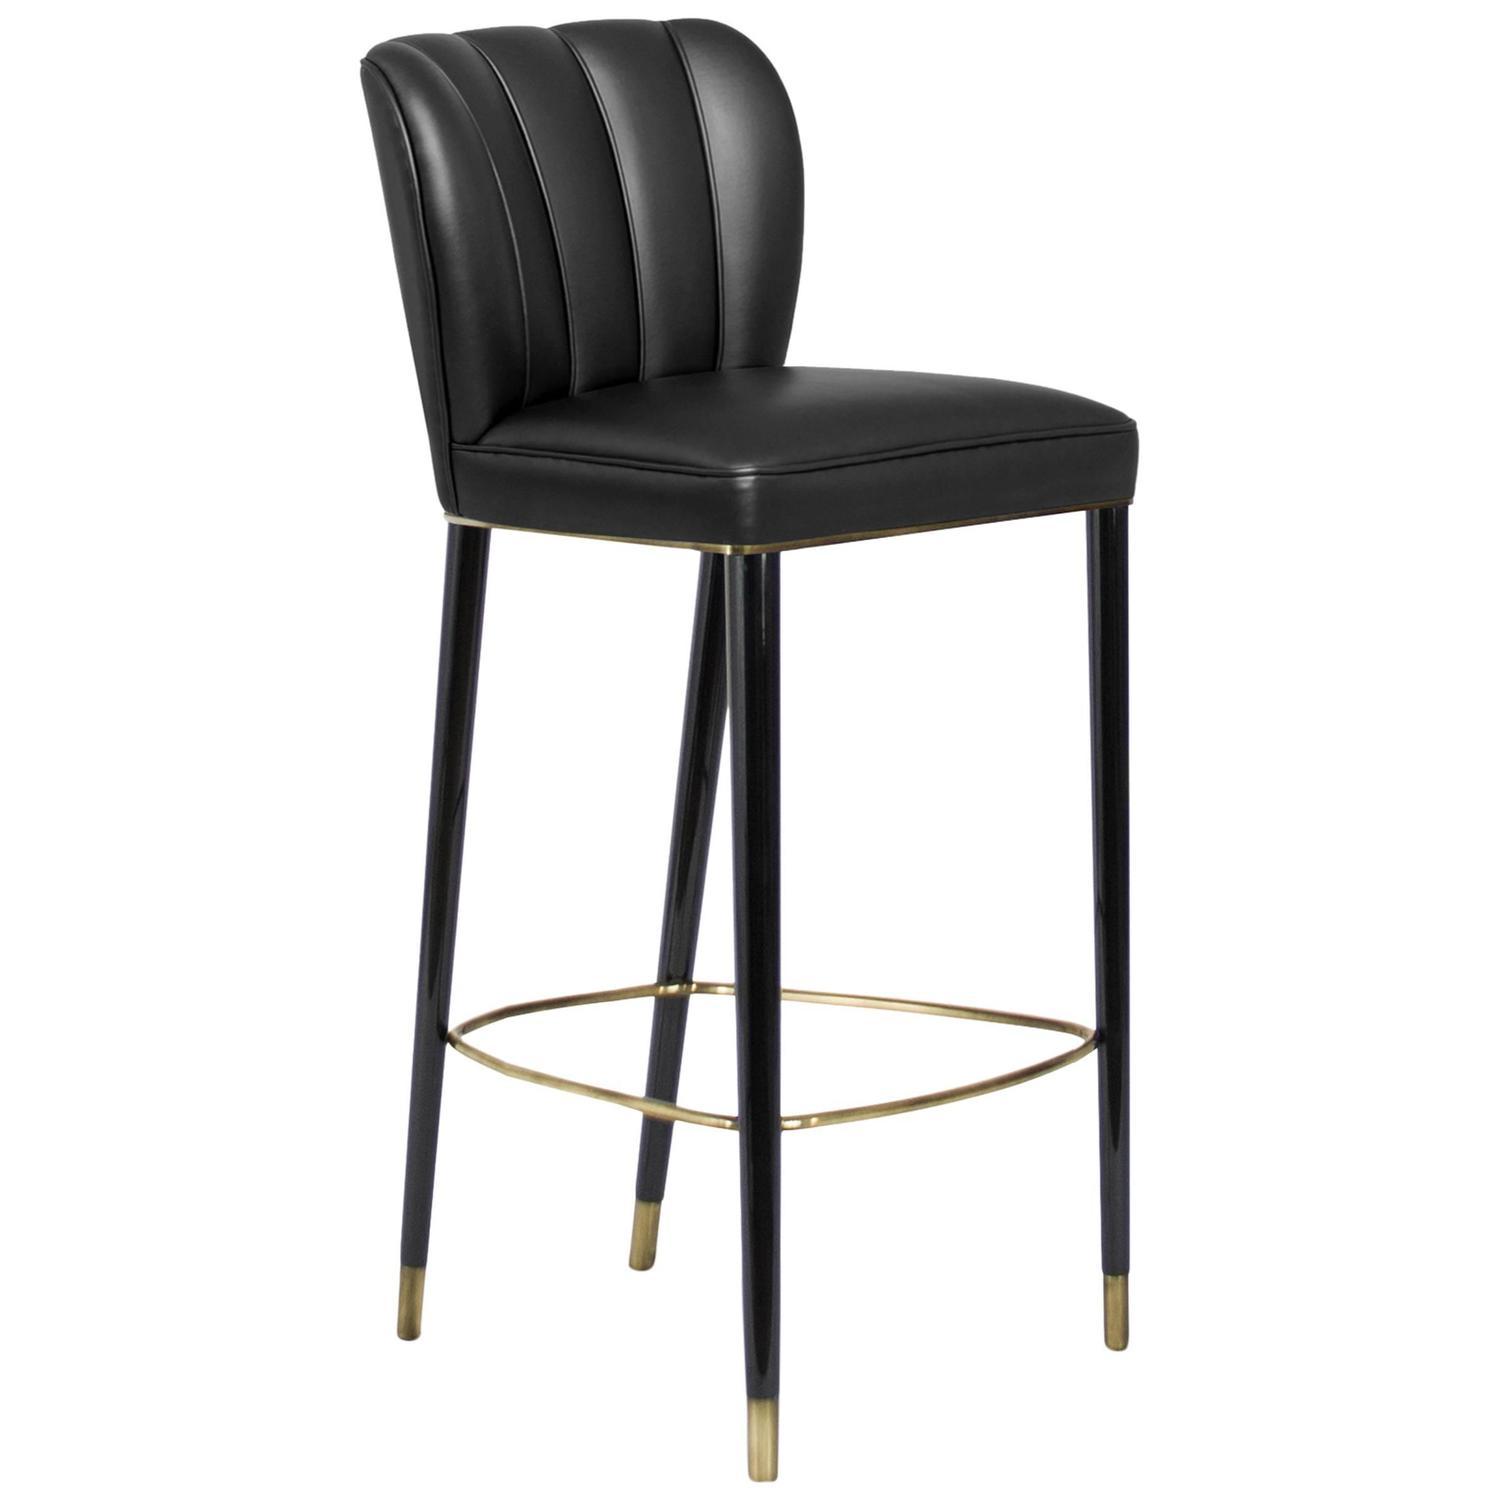 dragon bar stool black lacquered with brass details and synthetic leather